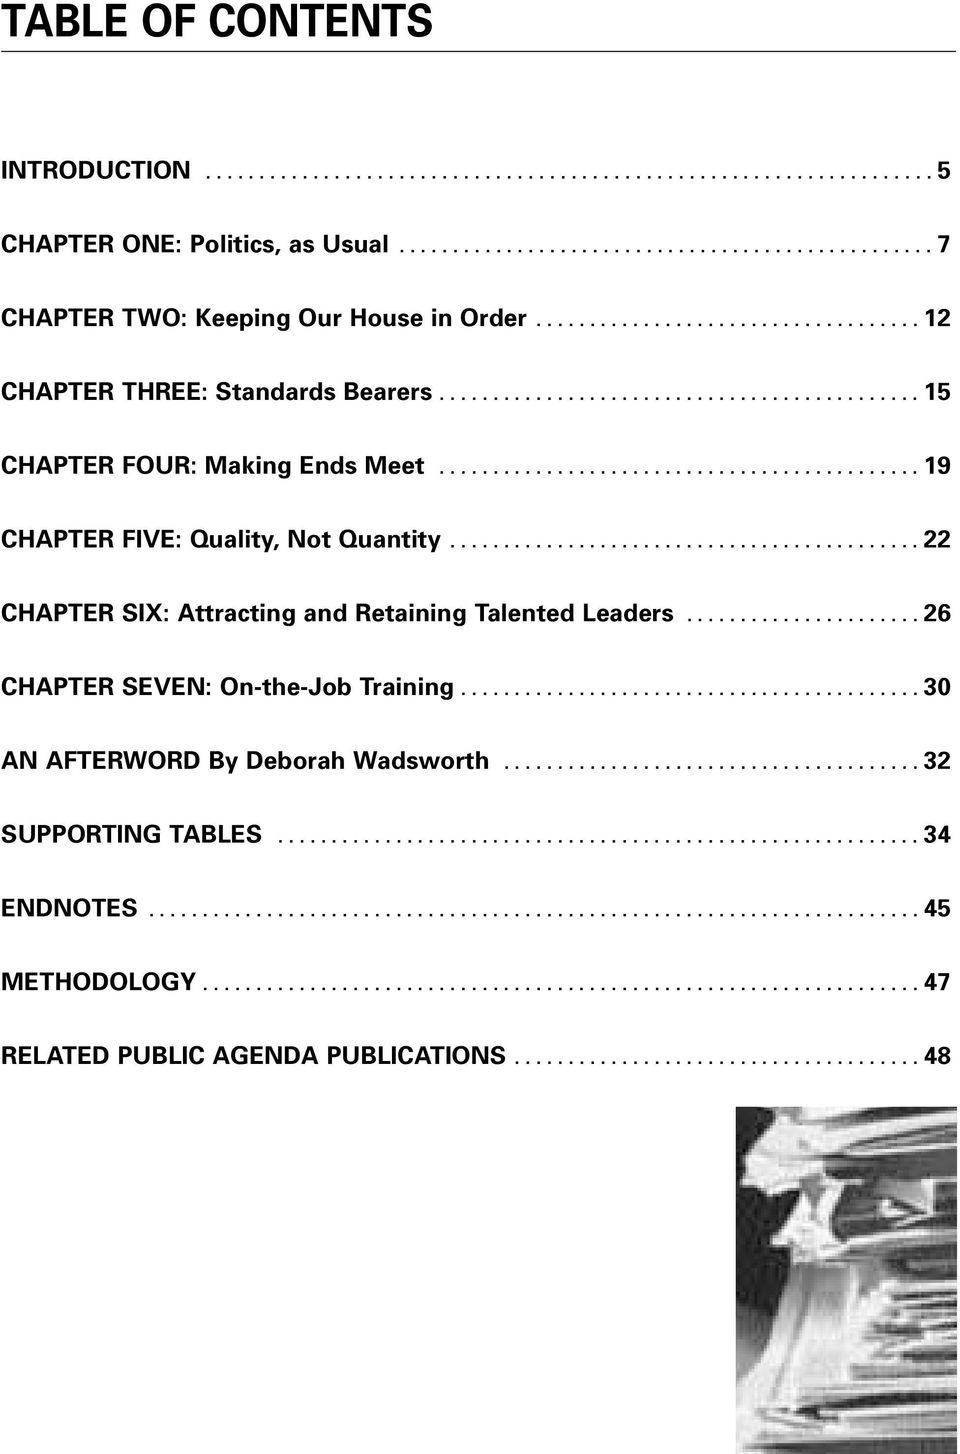 ........................................... 22 CHAPTER SIX: Attracting and Retaining Talented Leaders...................... 26 CHAPTER SEVEN: On-the-Job Training........................................... 30 AN AFTERWORD By Deborah Wadsworth.